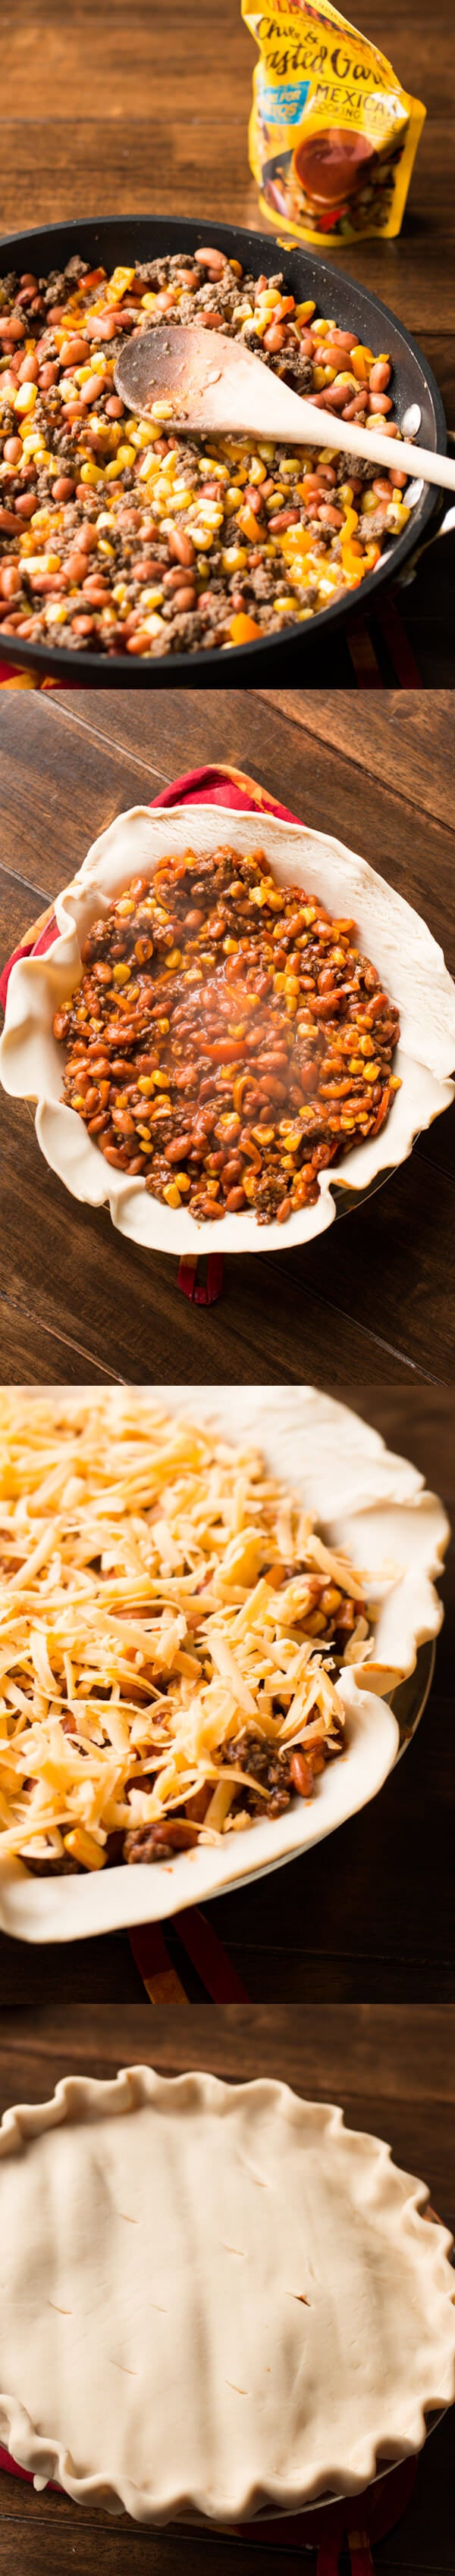 How to make taco pot pie with simple ingredients and hardly any time in the kitchen. ohsweetbasil.com-8 ground beef, pinto beans